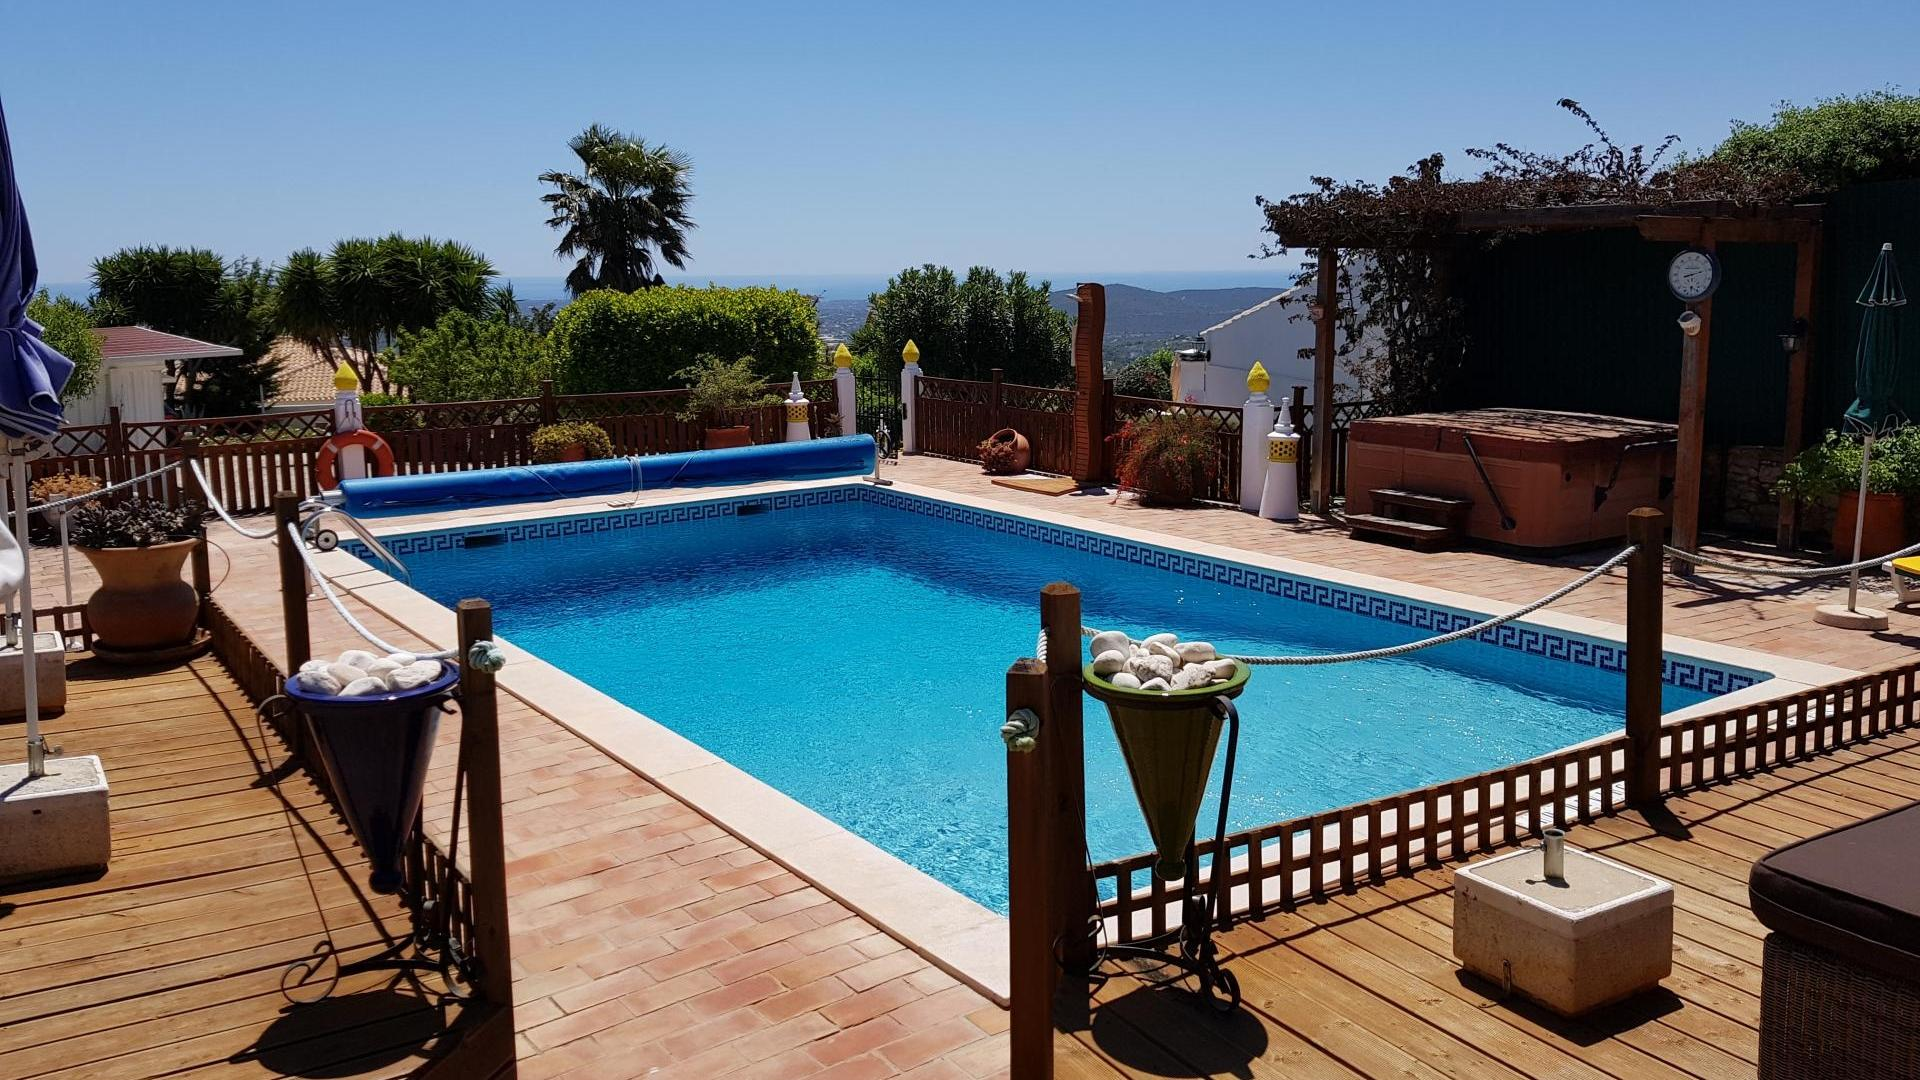 2 Bedroom Cottage/shared facilities in  Portugal